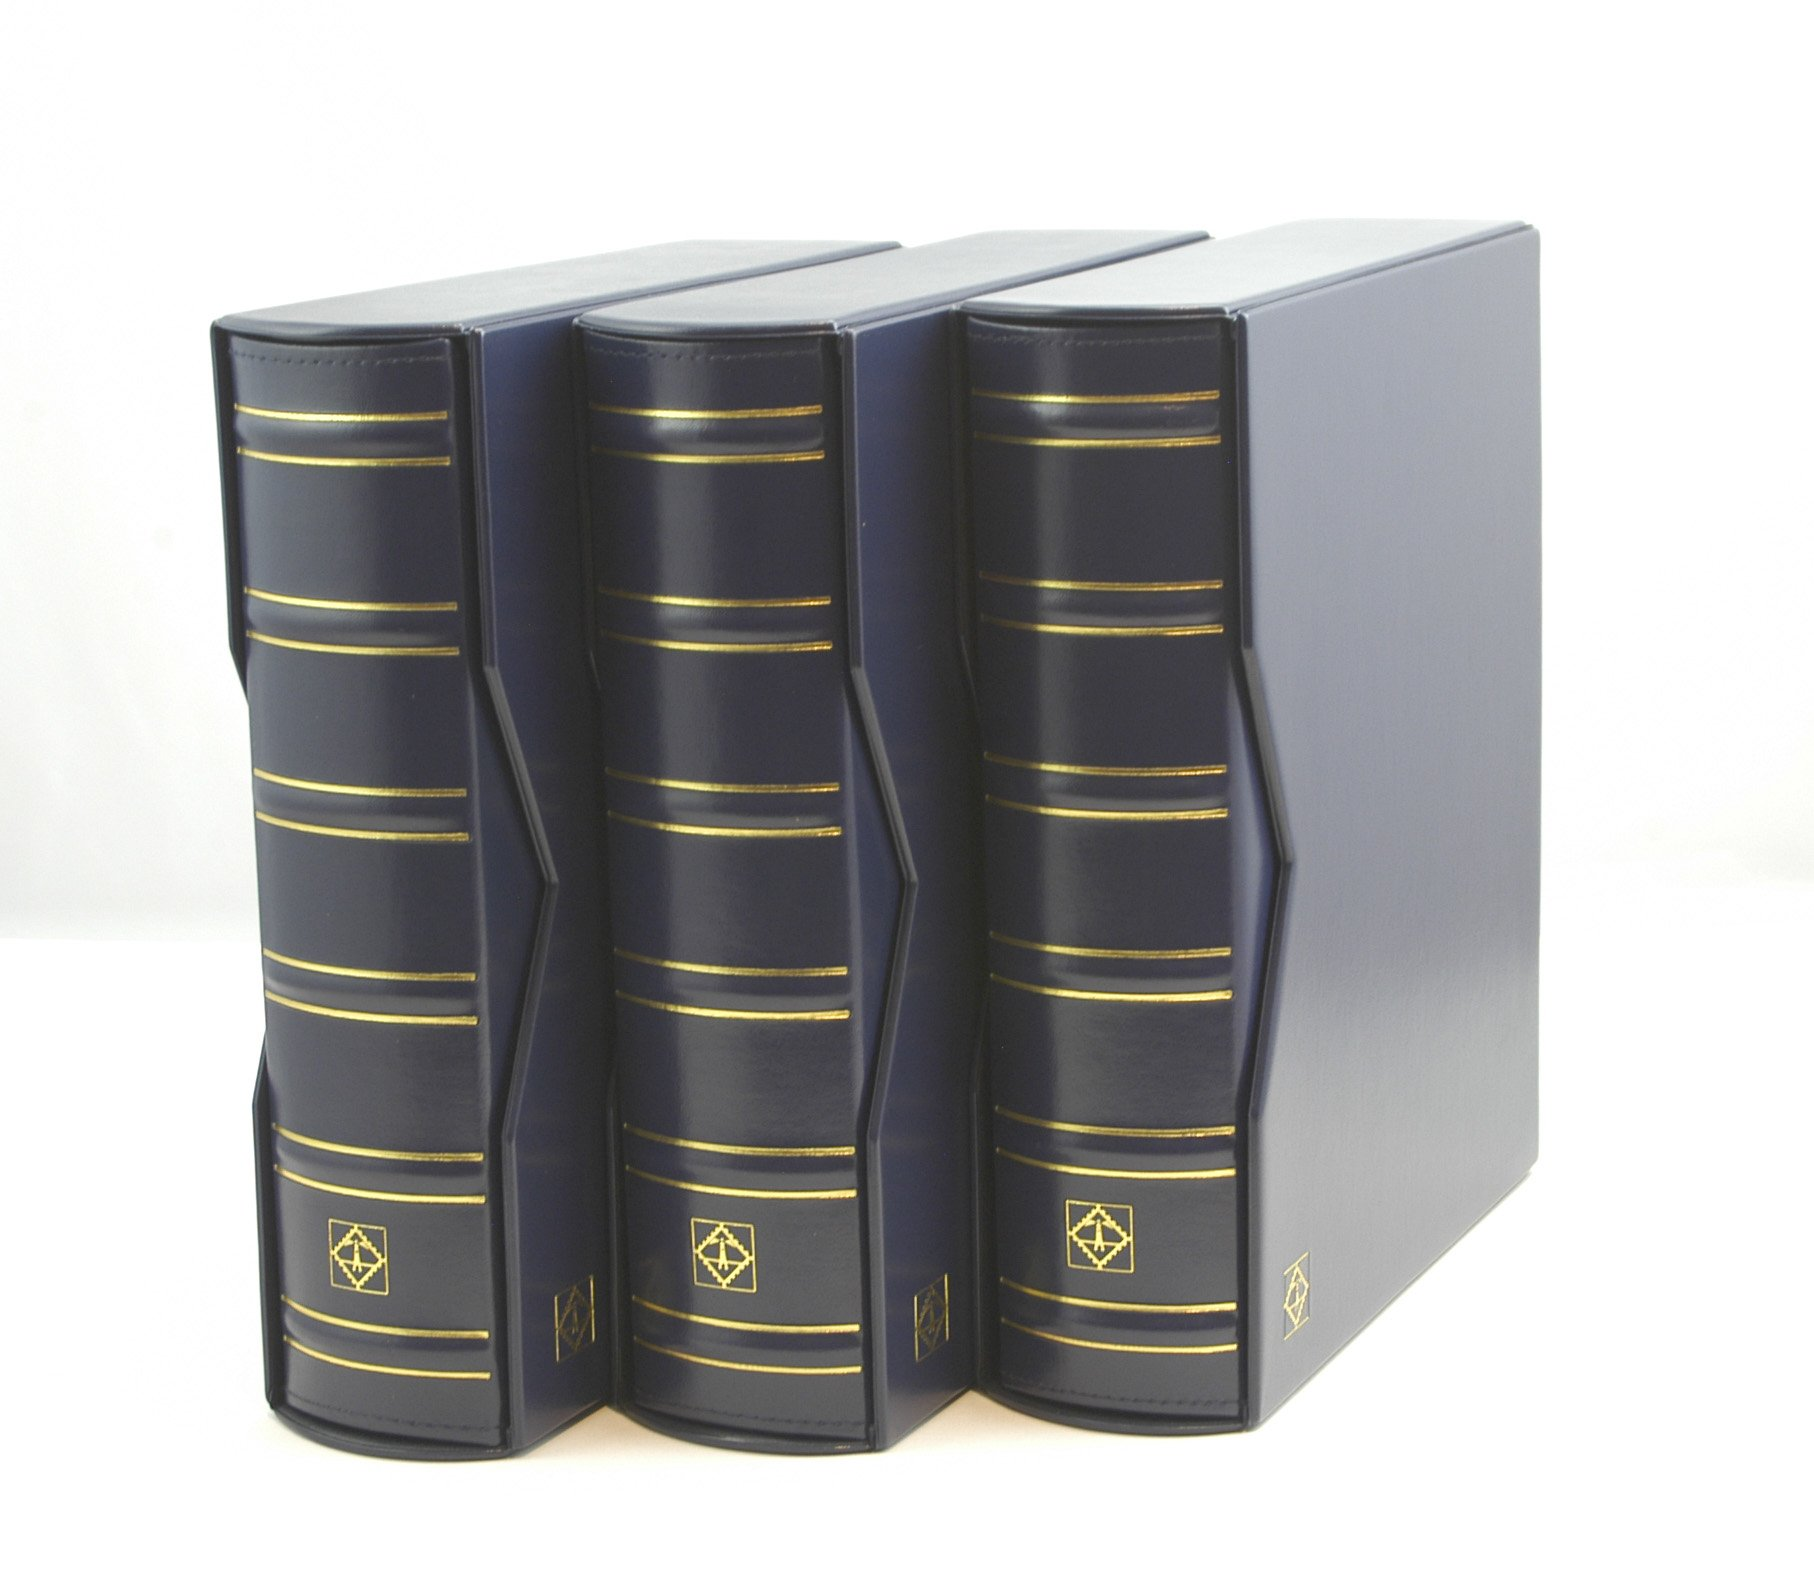 Lighthouse Vario-G Classic Binders with Slipcases, Royal Blue, Set of 3